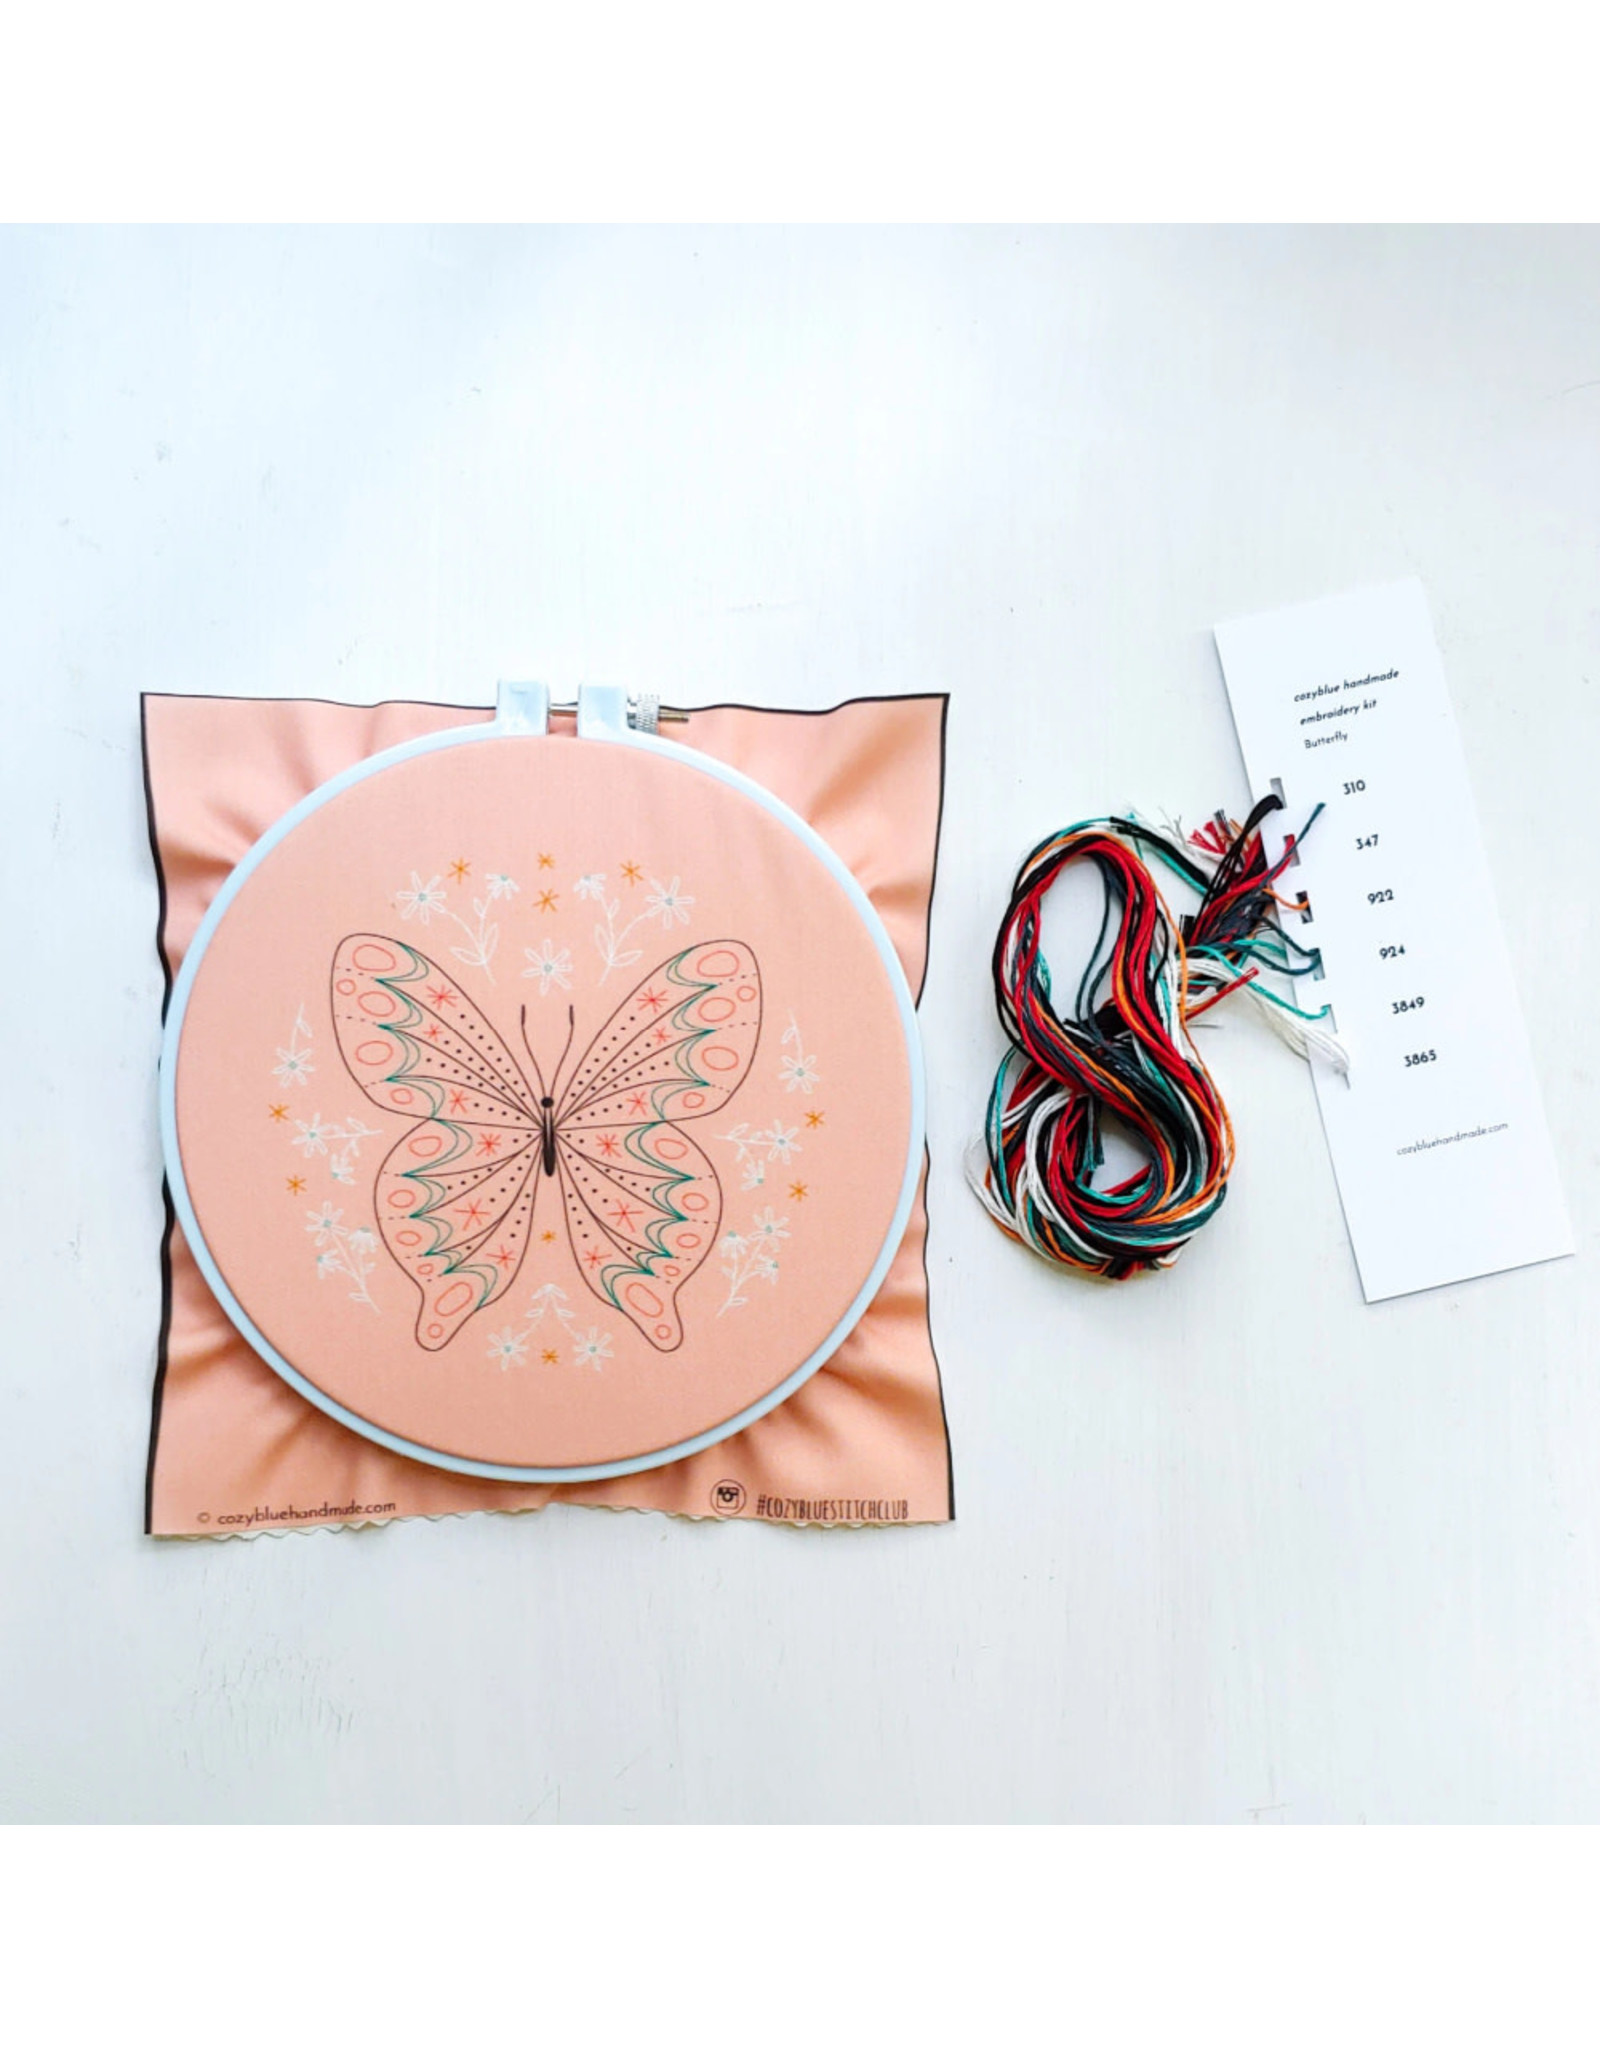 cozyblue Butterfly Embroidery Kit from cozyblue